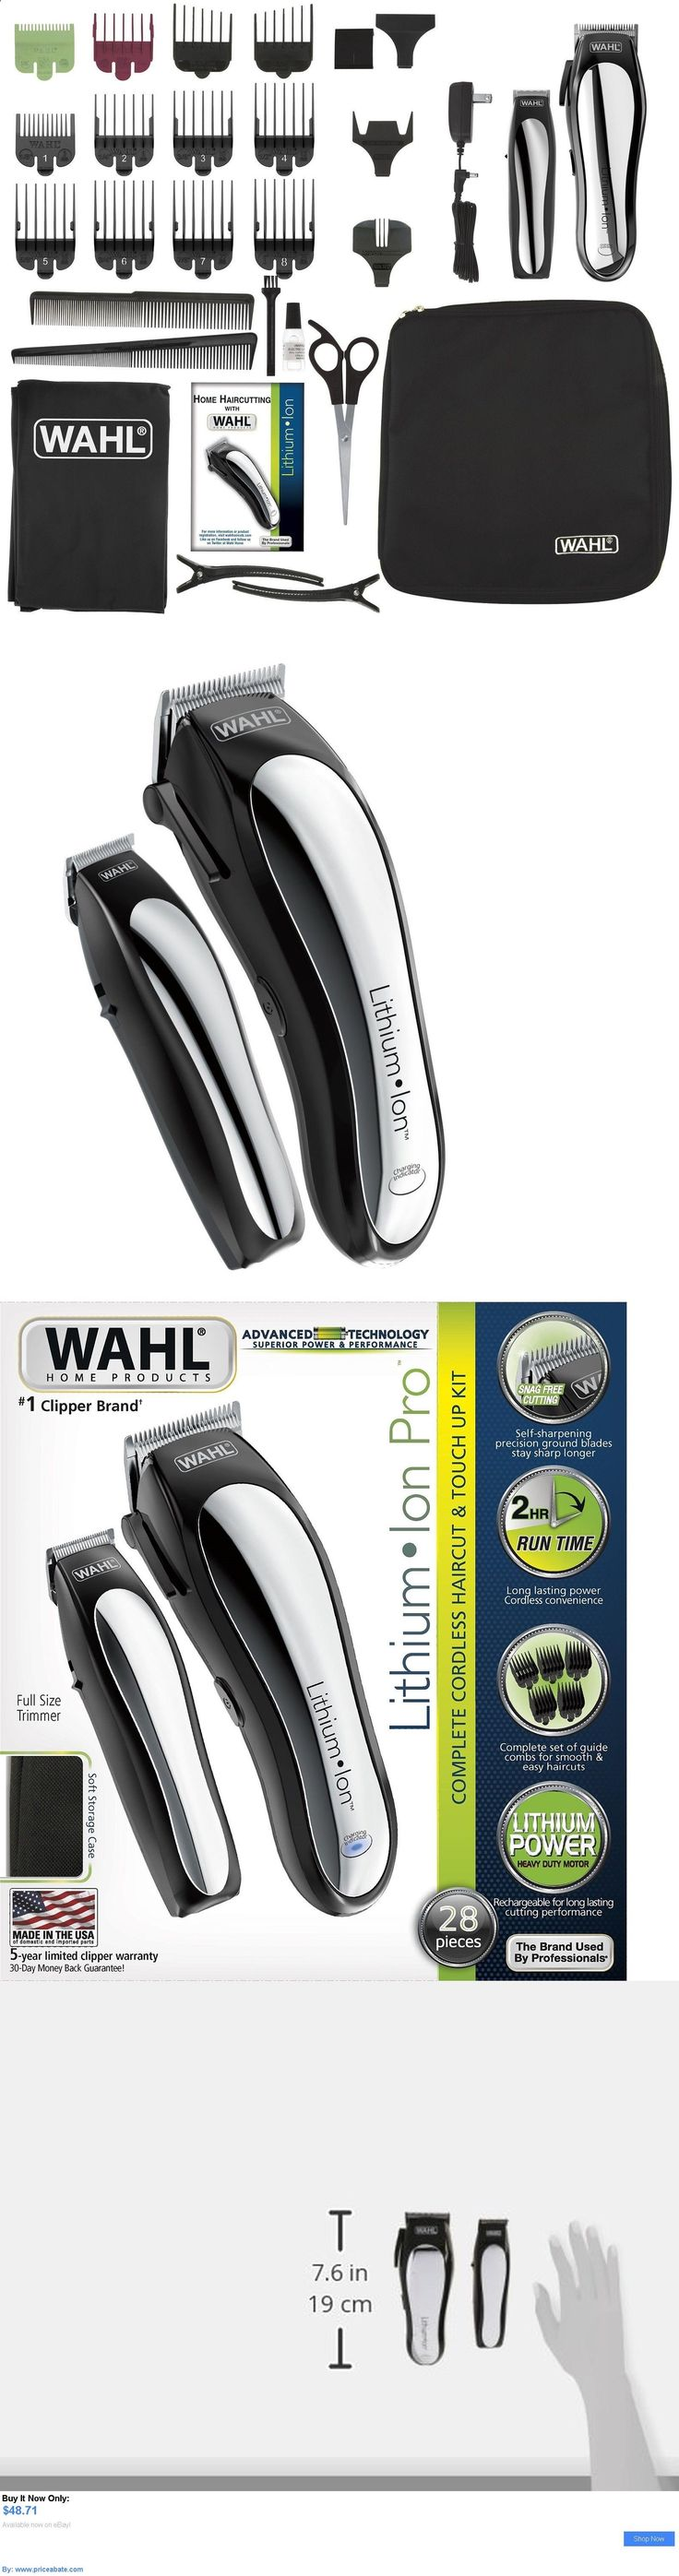 Shaving: Cordless Hair Clippers Trimmer Wahl Professional Cut Shaver Salon Barber Kit Pro BUY IT NOW ONLY: $48.71 #priceabateShaving OR #priceabate